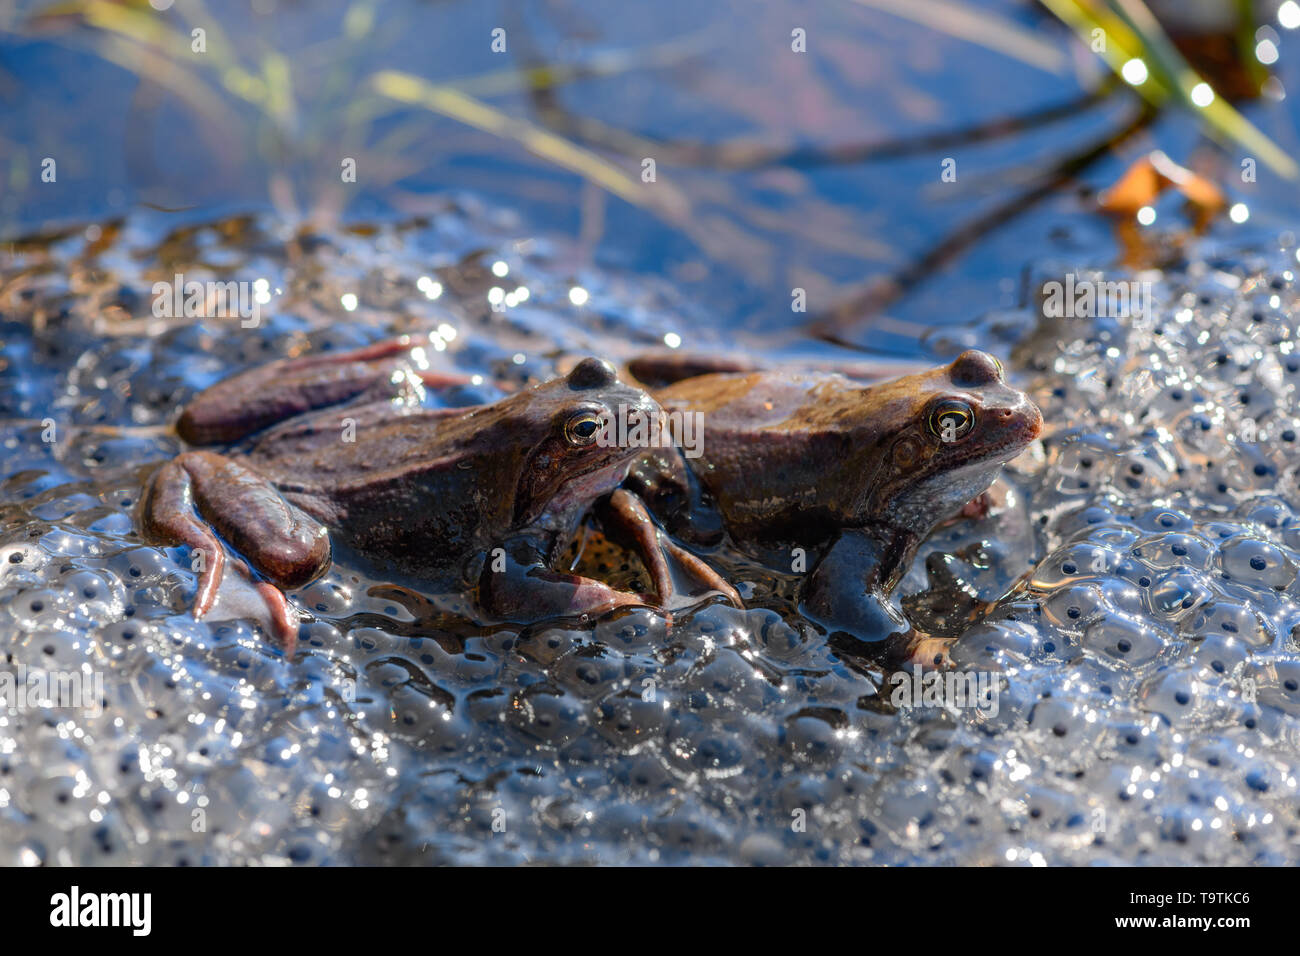 Two common frogs (Rana temporaria) and their spawn are in the pond. - Stock Image